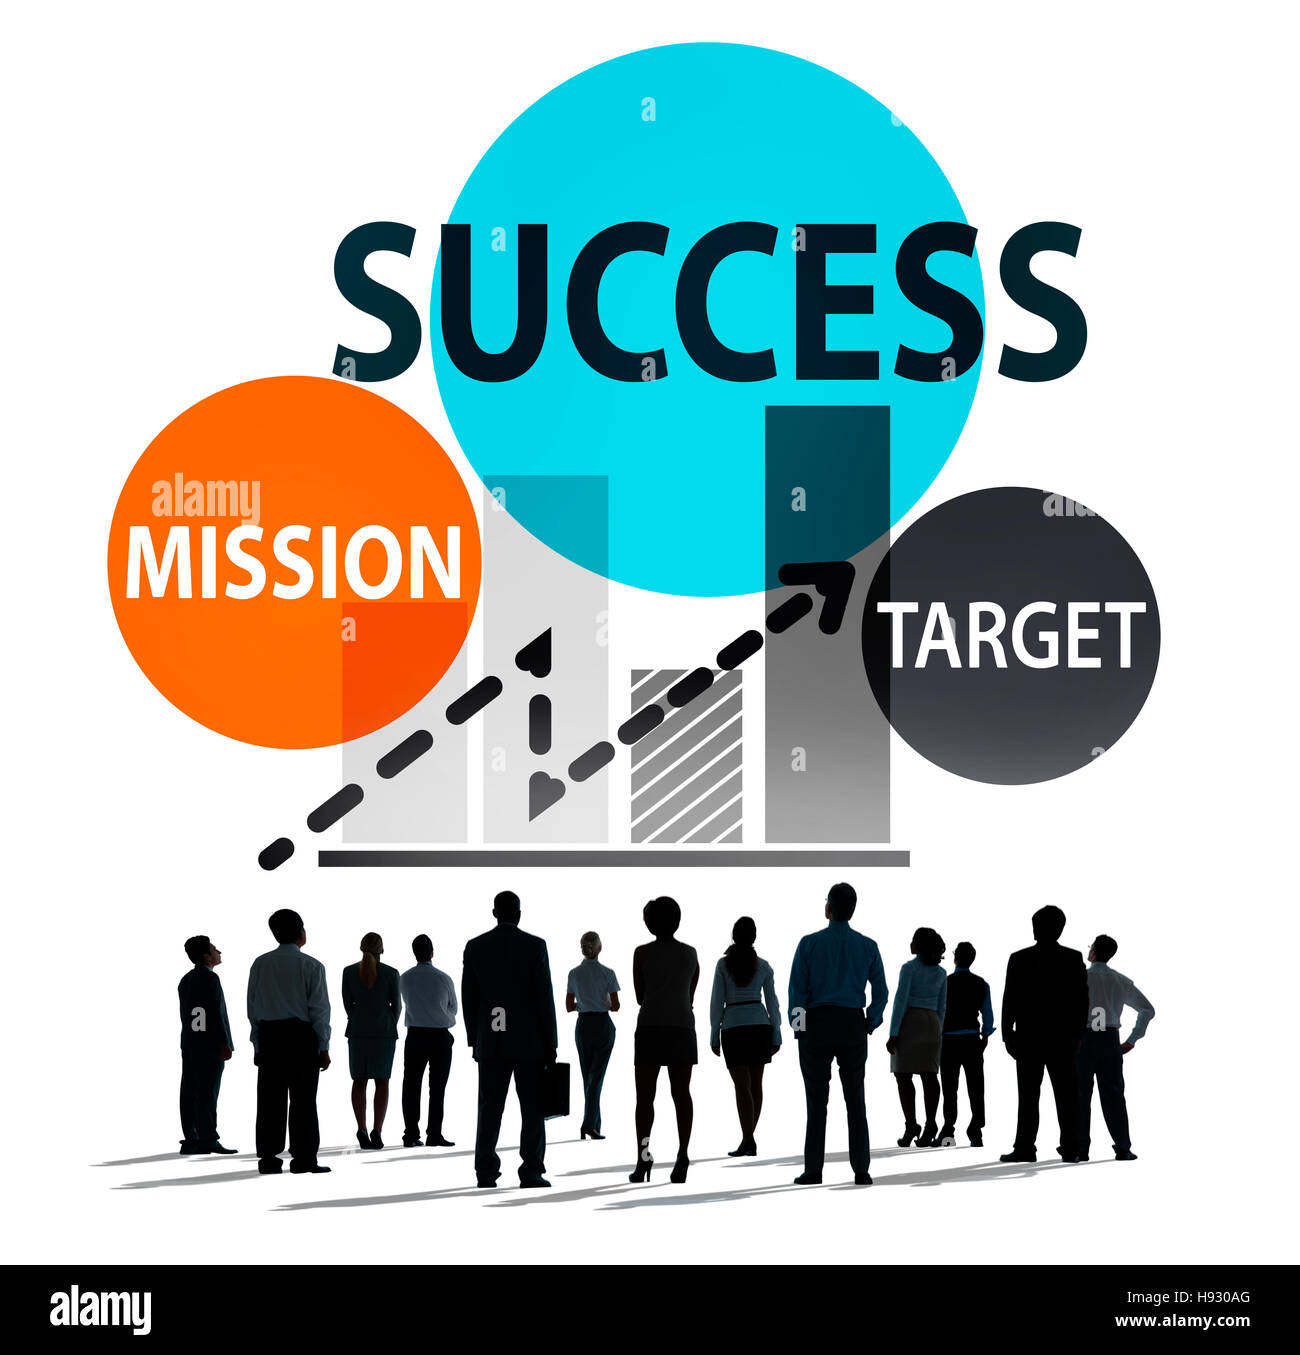 Success Mission Tarket Buisness Growth Planning Concept - Stock Image